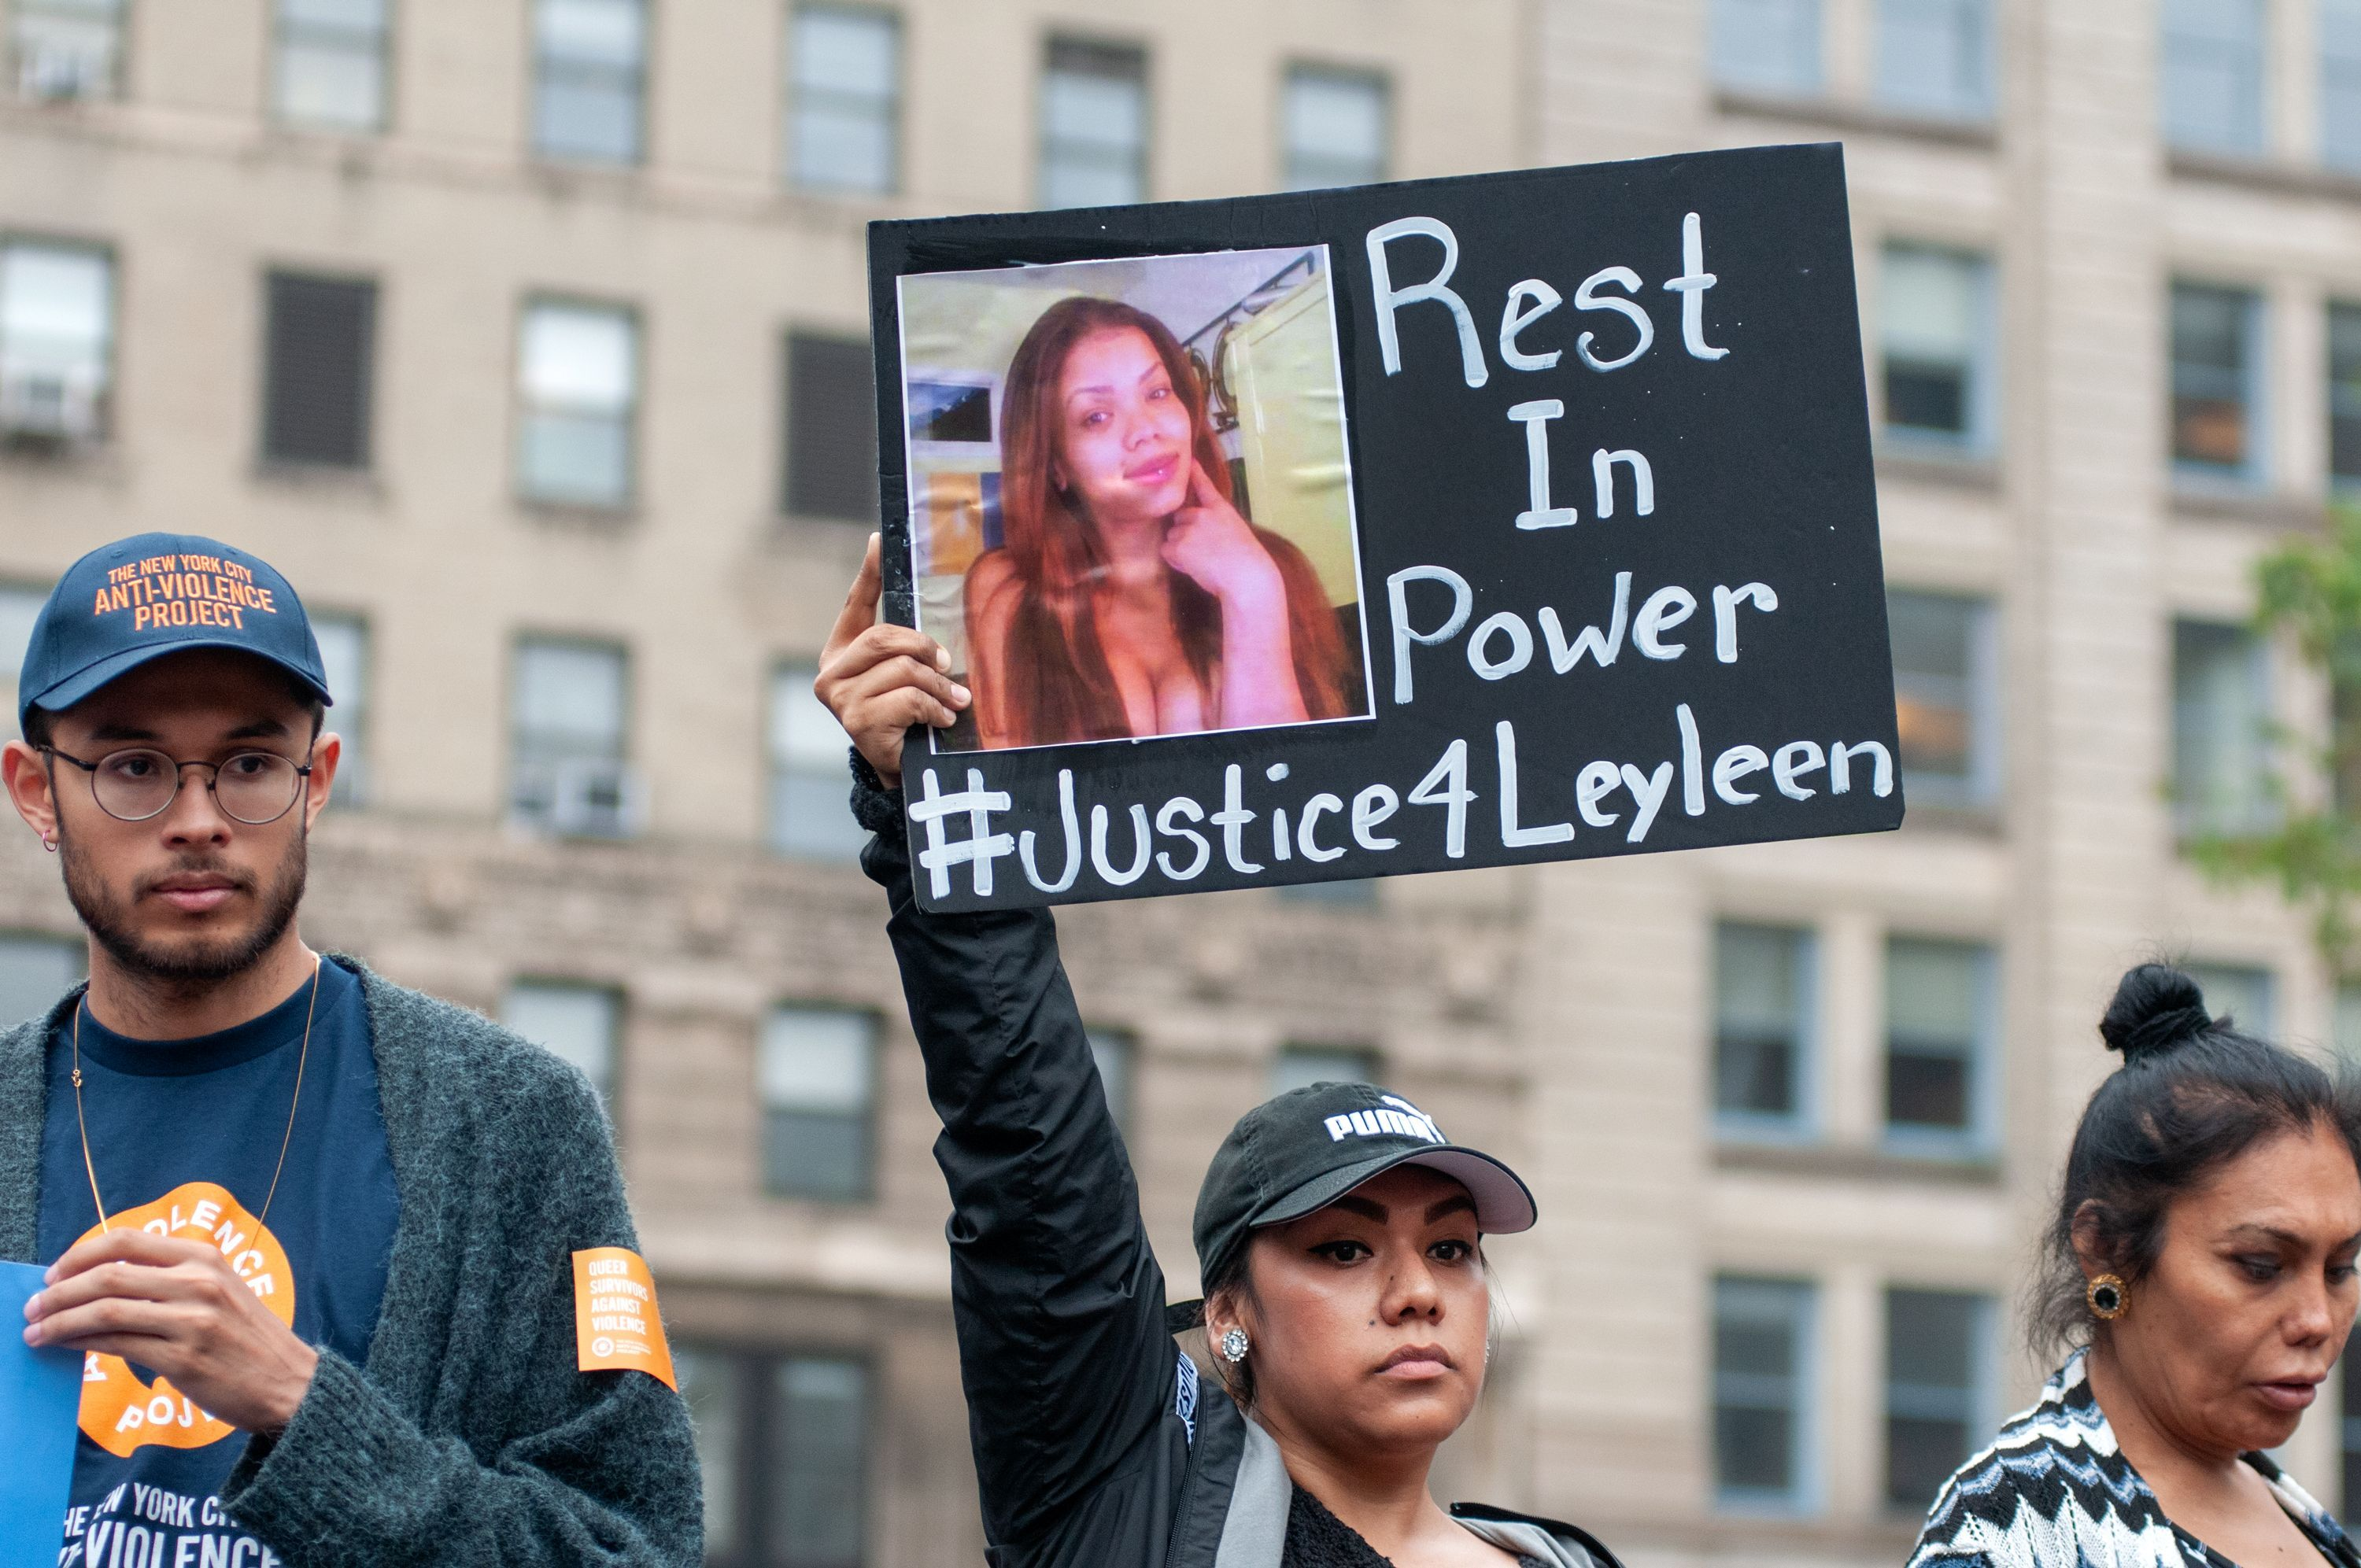 A Foley Square vigil for Layleen Polanco on June 10, 2019.